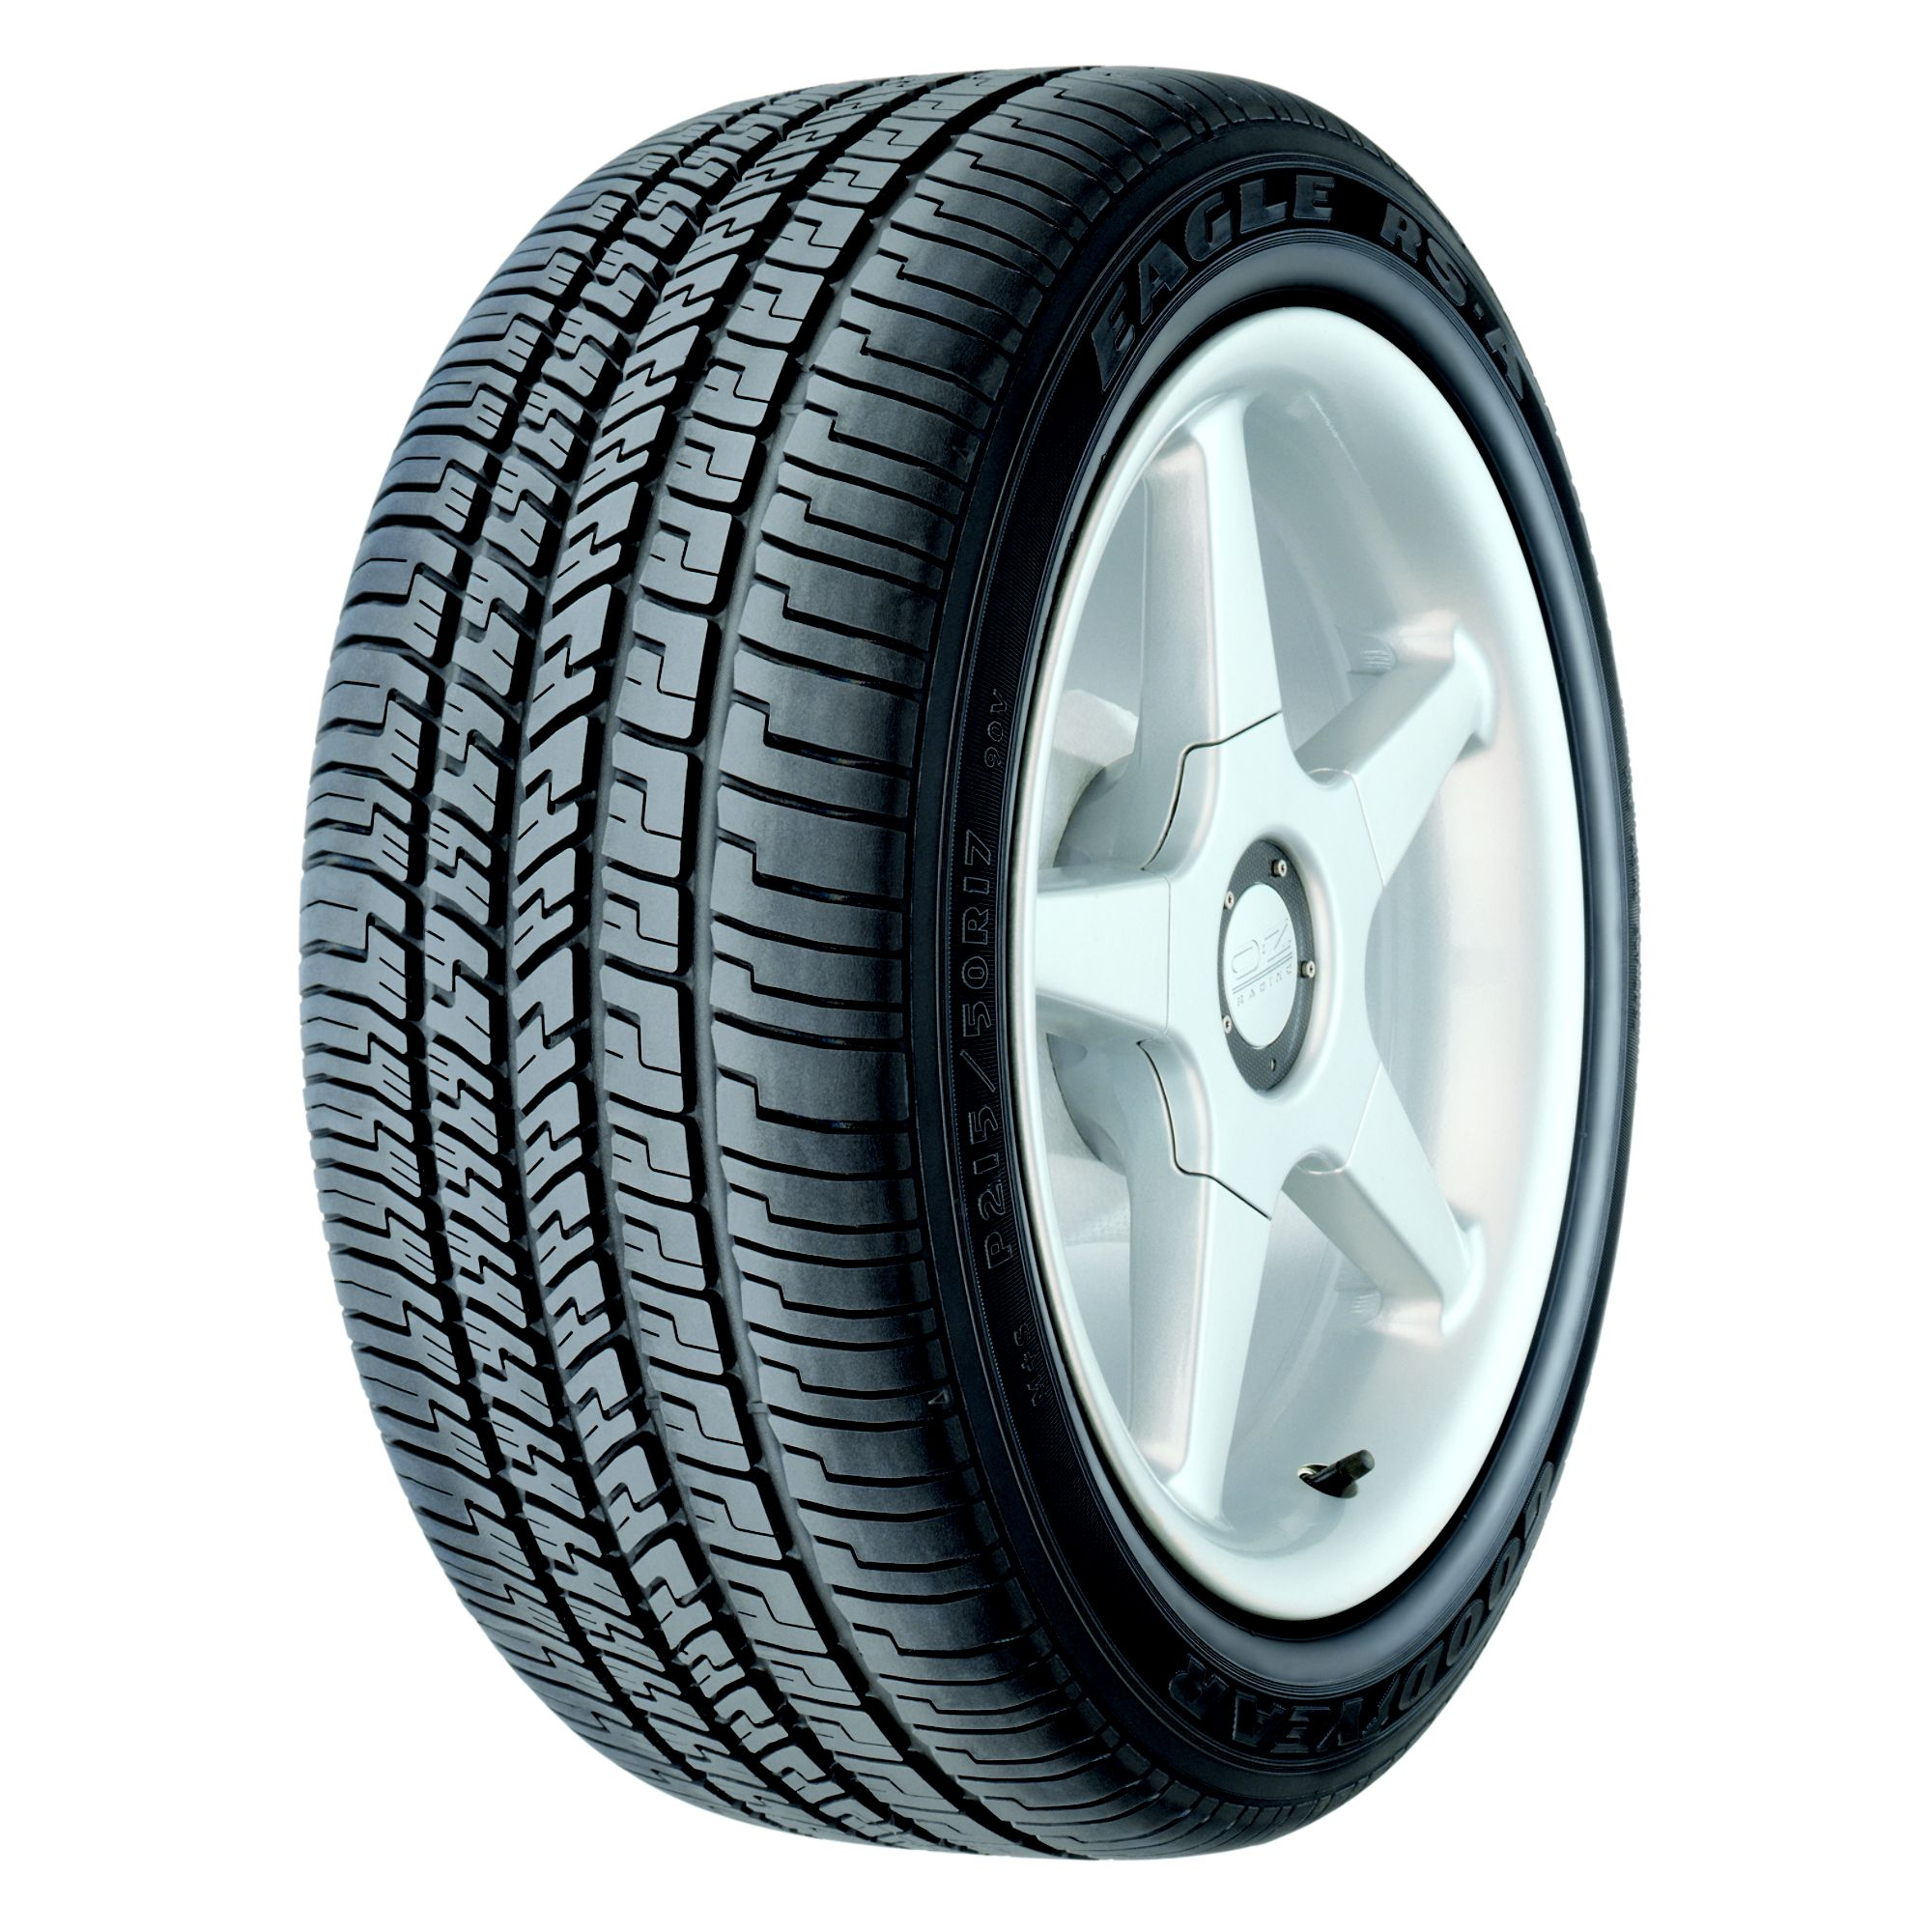 EAGLE RS-A POLICE TIRE P225/60R18 99V BW